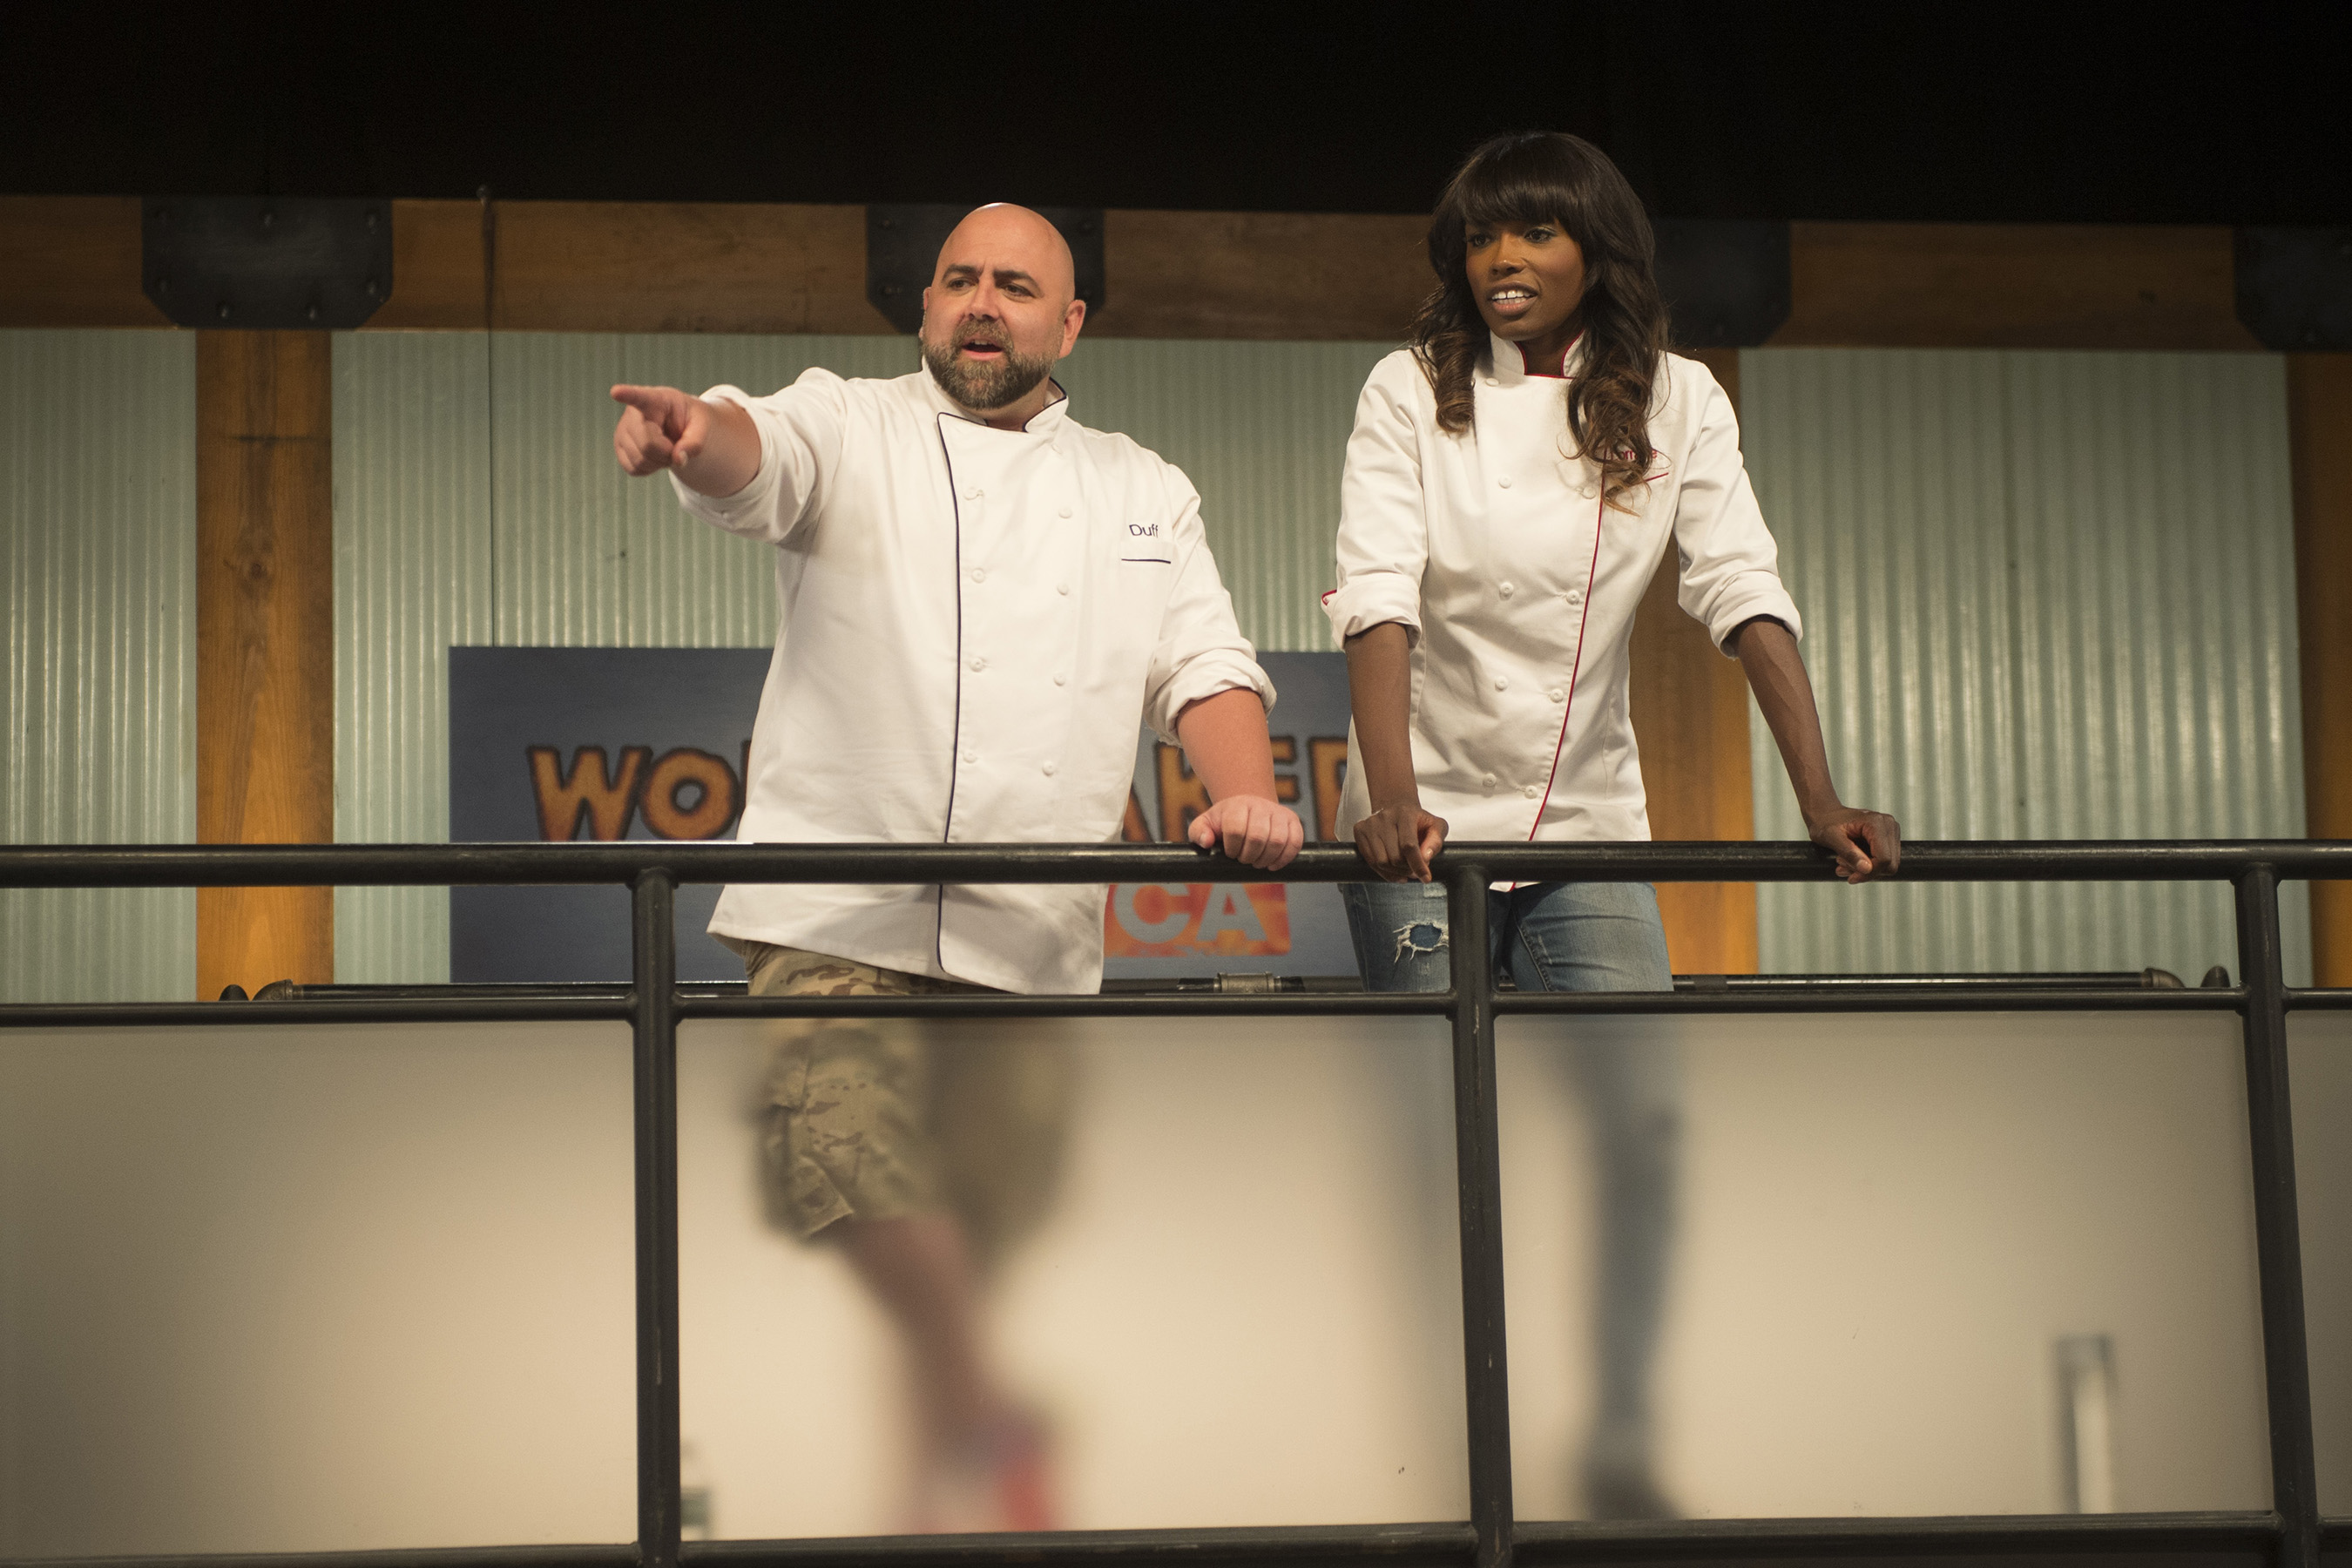 Hosts Duff Goldman and Lorraine Pascale watch the competitors on Food Network's Worst Cooks in America